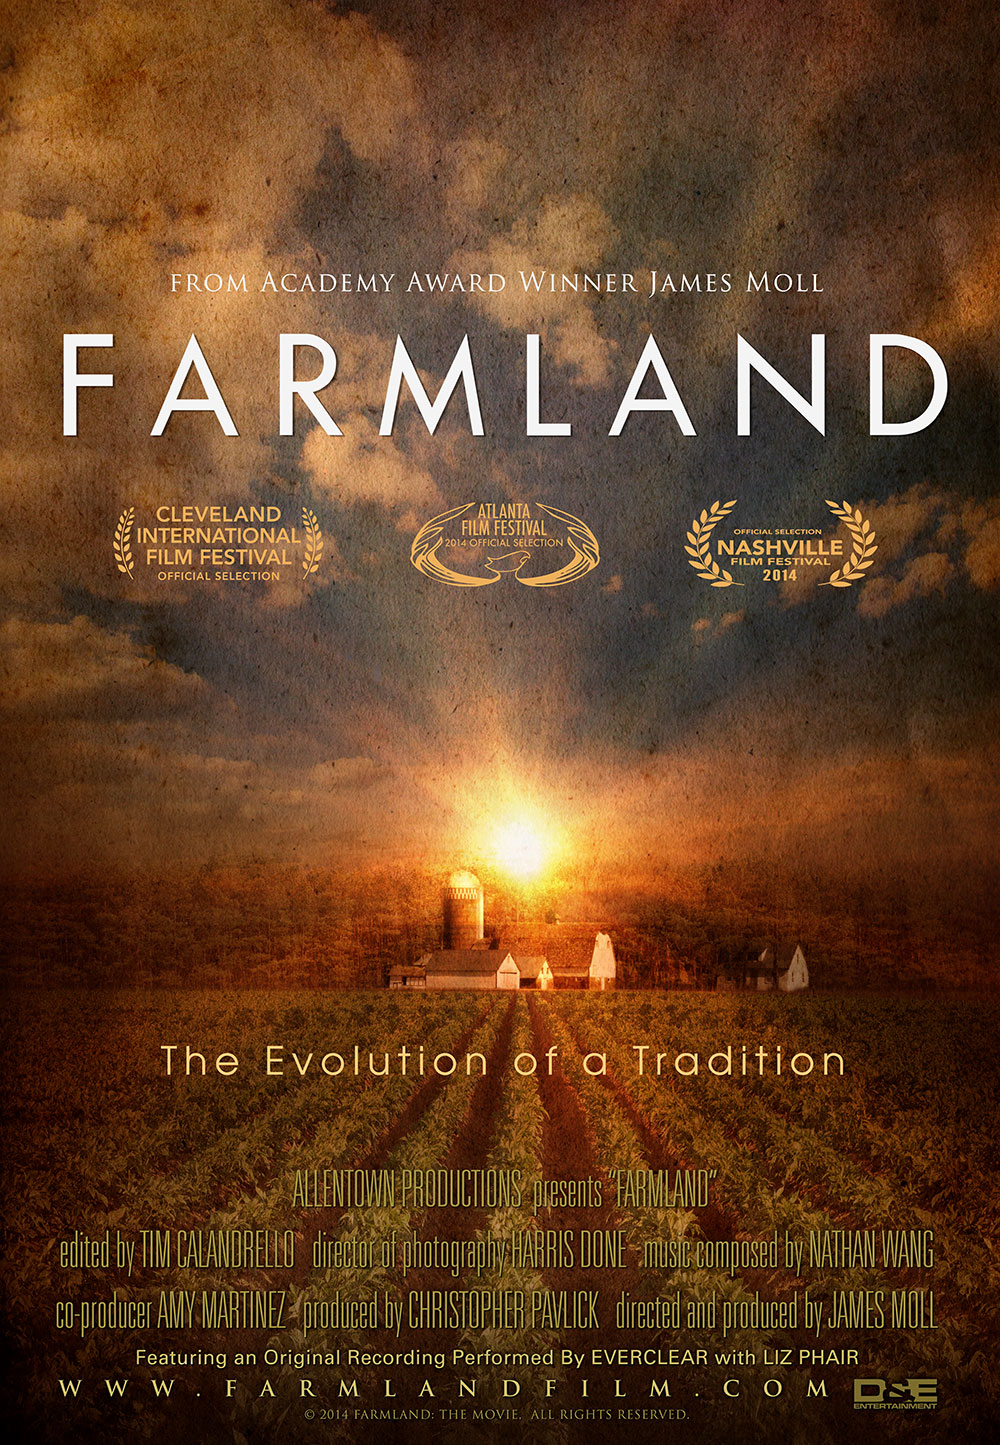 FARMLAND FARMLAND takes an intimate look at the lives of farmers and ranchers in their twenties, all of whom are now responsible for running their farming business. Learn about their high- risk/high reward jobs and passion for a way of life that has been passed down from generation to generation, yet continues to evolve.  Directed by ACADEMY® AWARD WINNER James Moll, come meet America's farmers and find out where your food really comes from.